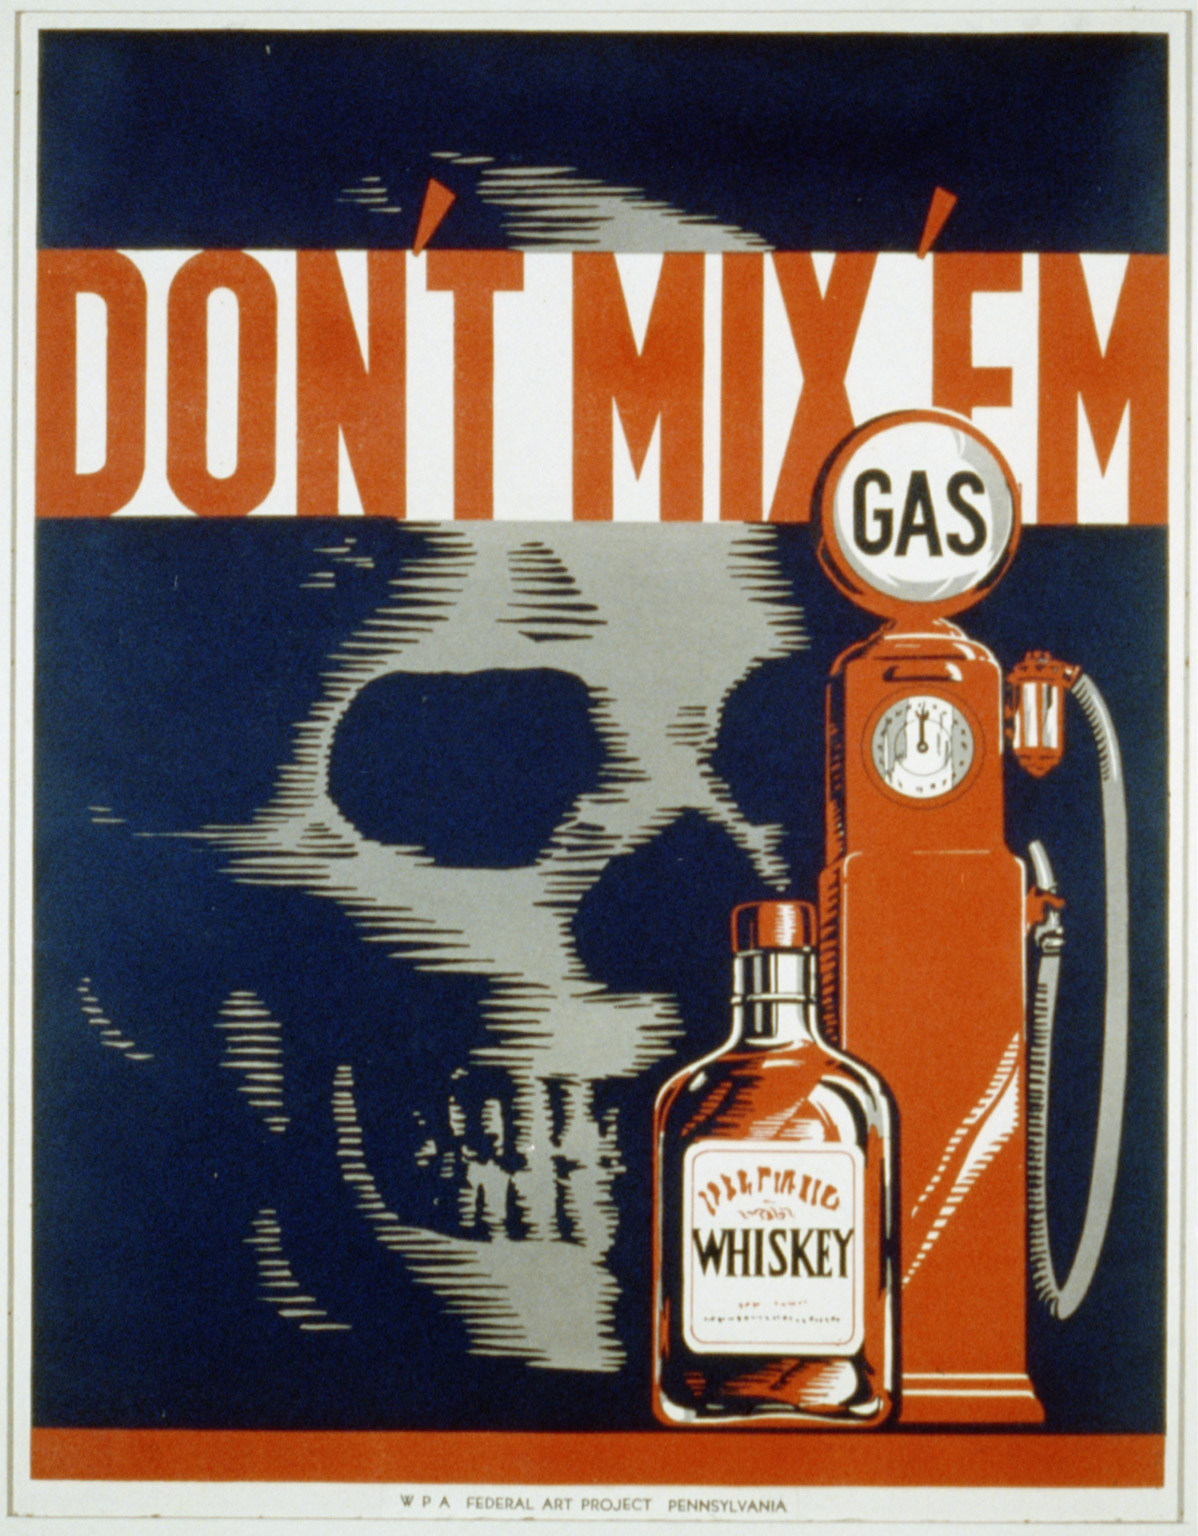 Poster showing whiskey bottle, gas pump, and a skull. Created between 1936 and 1937.